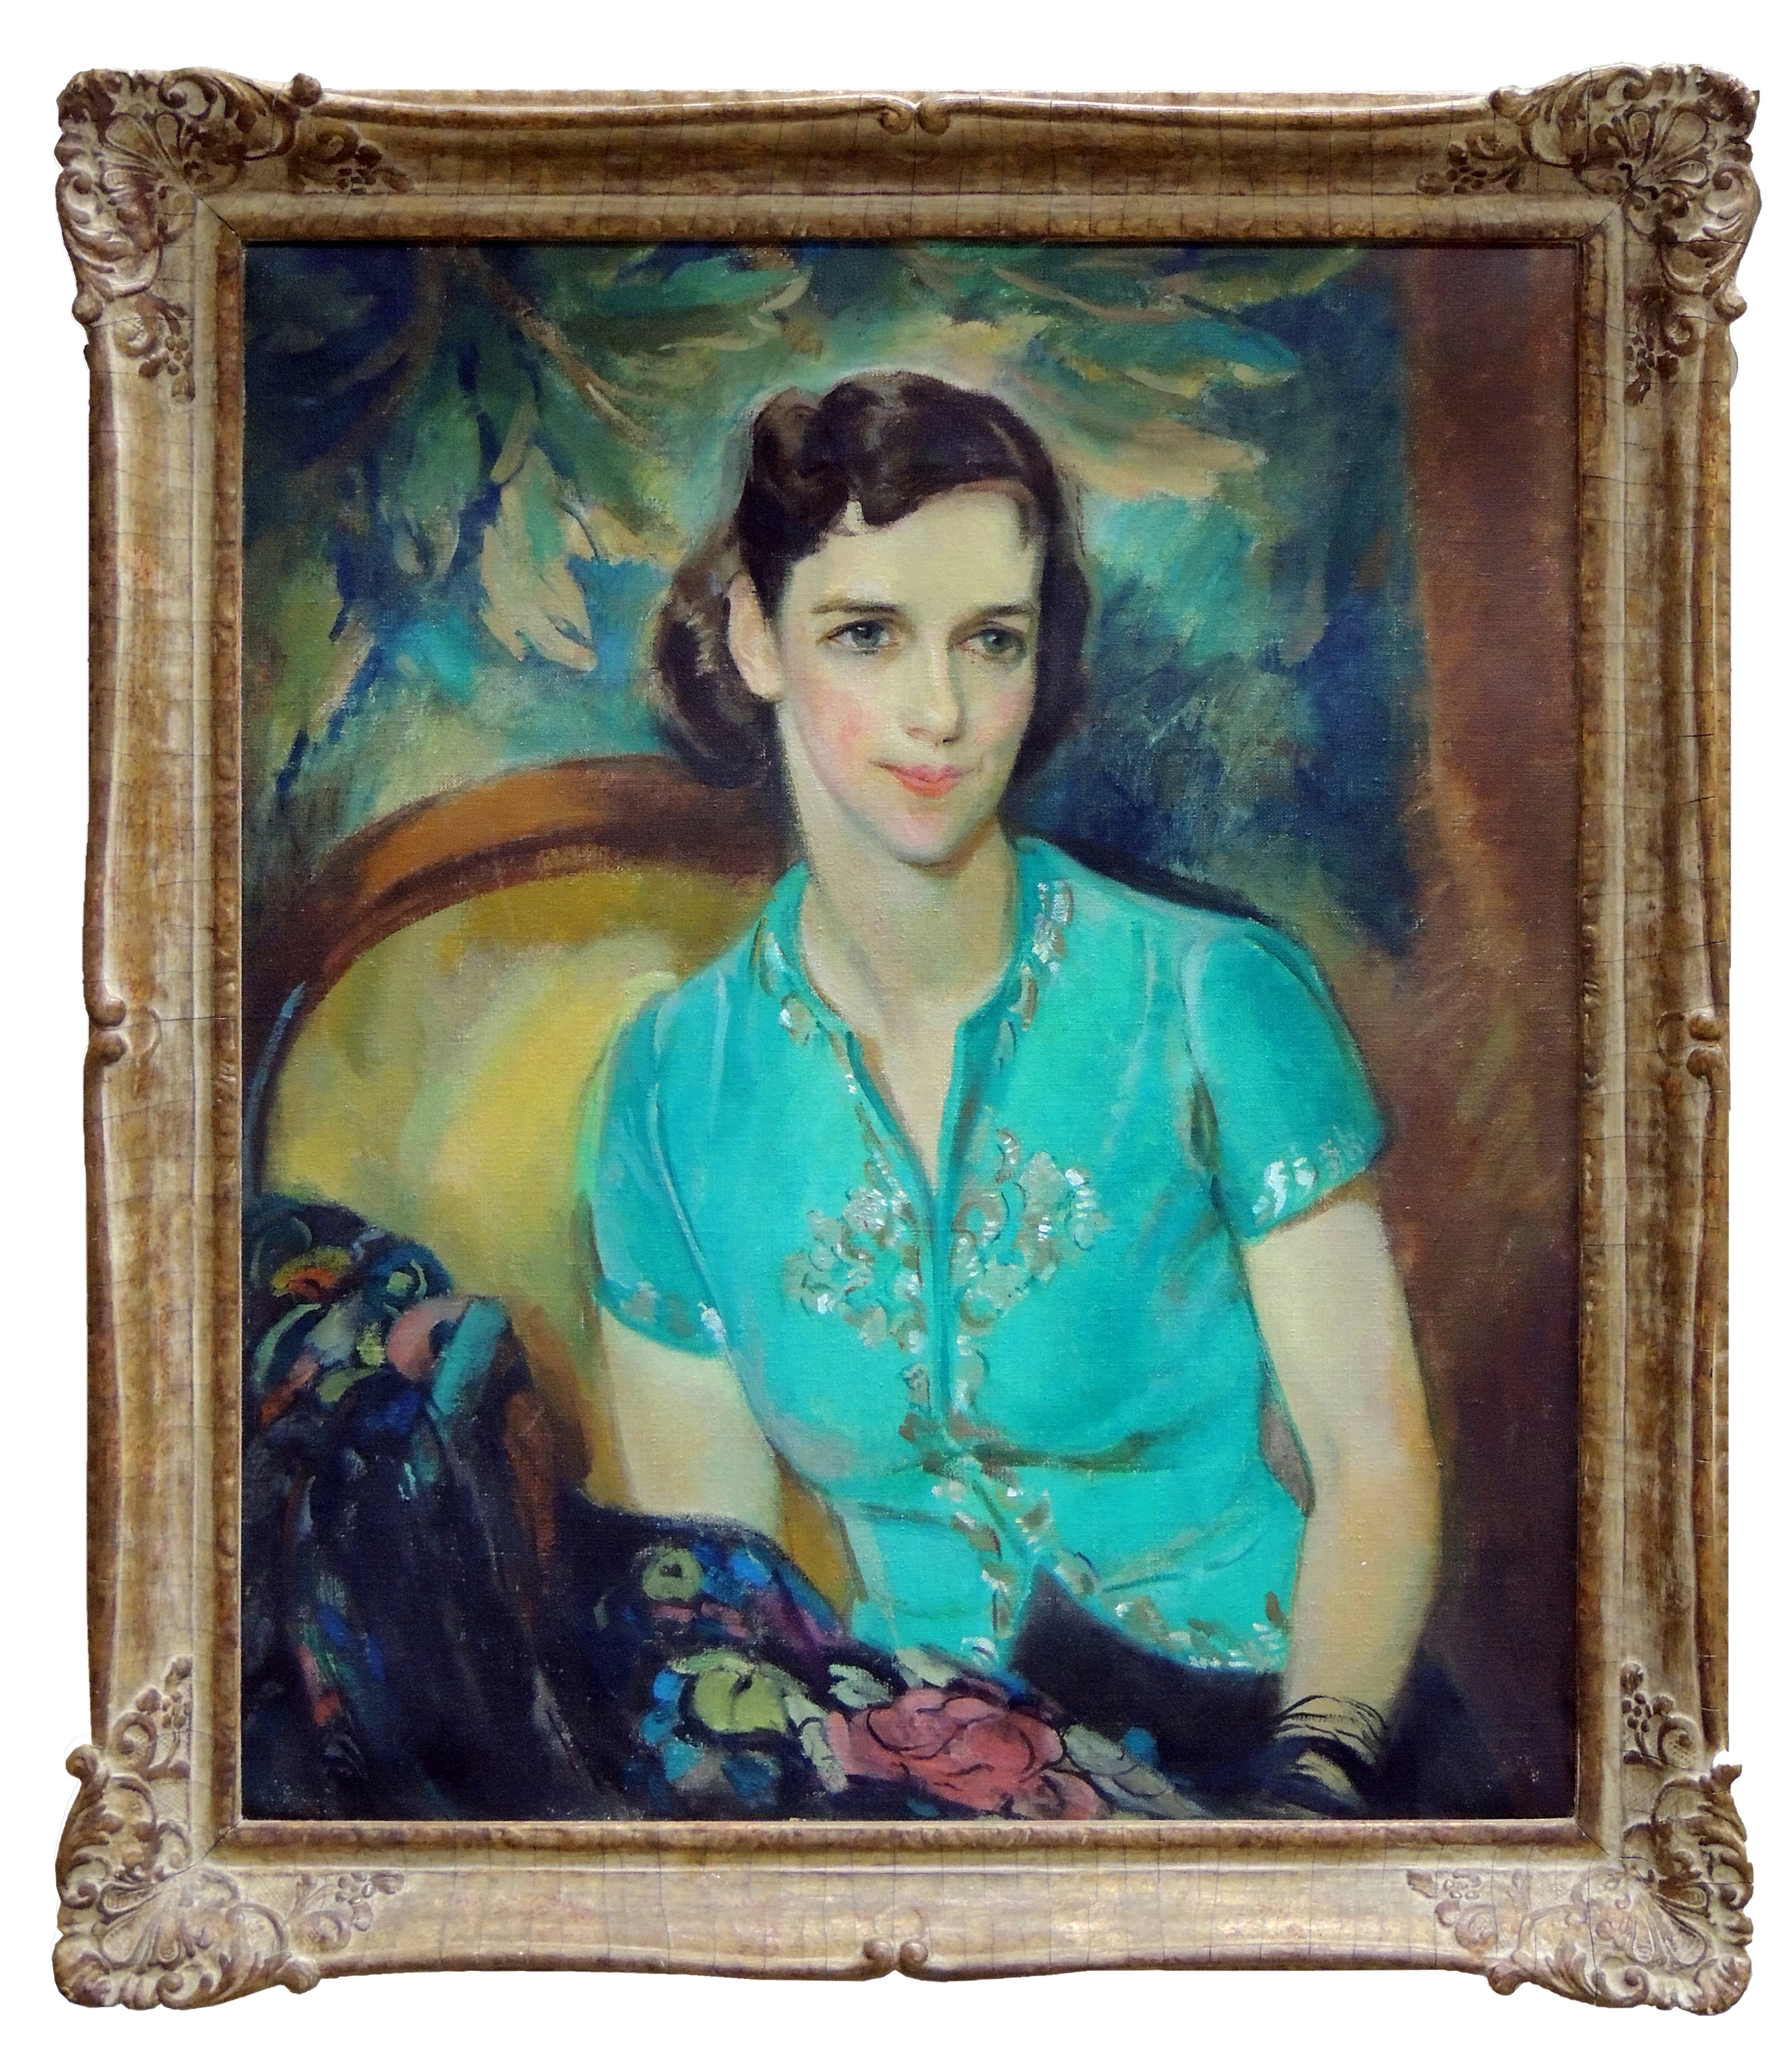 Alice Schille | PORTRAIT OF GERTRUDE MCPHERSON MOUAT | oil on canvas | 36 x 29"